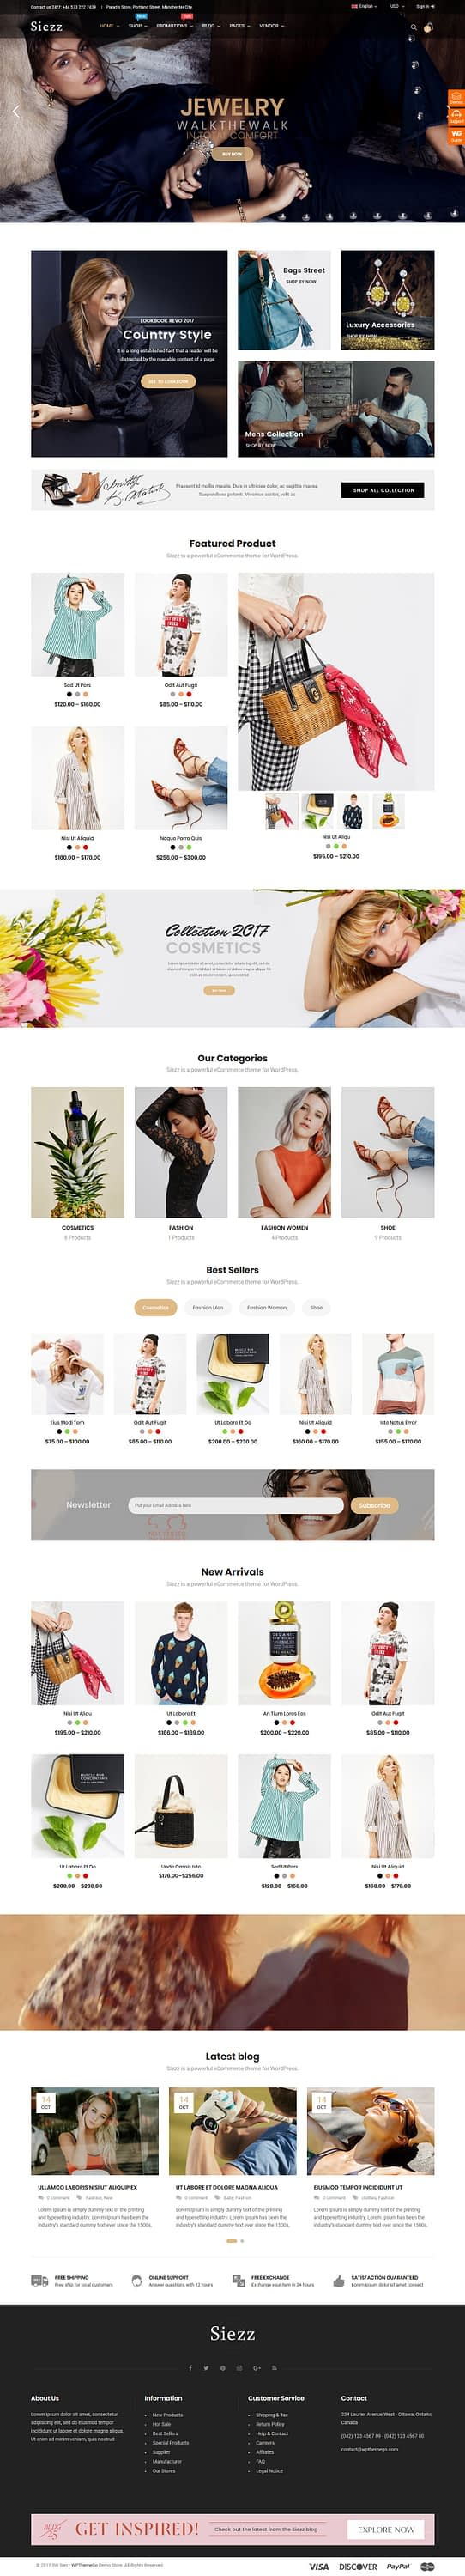 siezz best premium marketplace wordpress theme - 10+ Best Premium Marketplace WordPress Themes